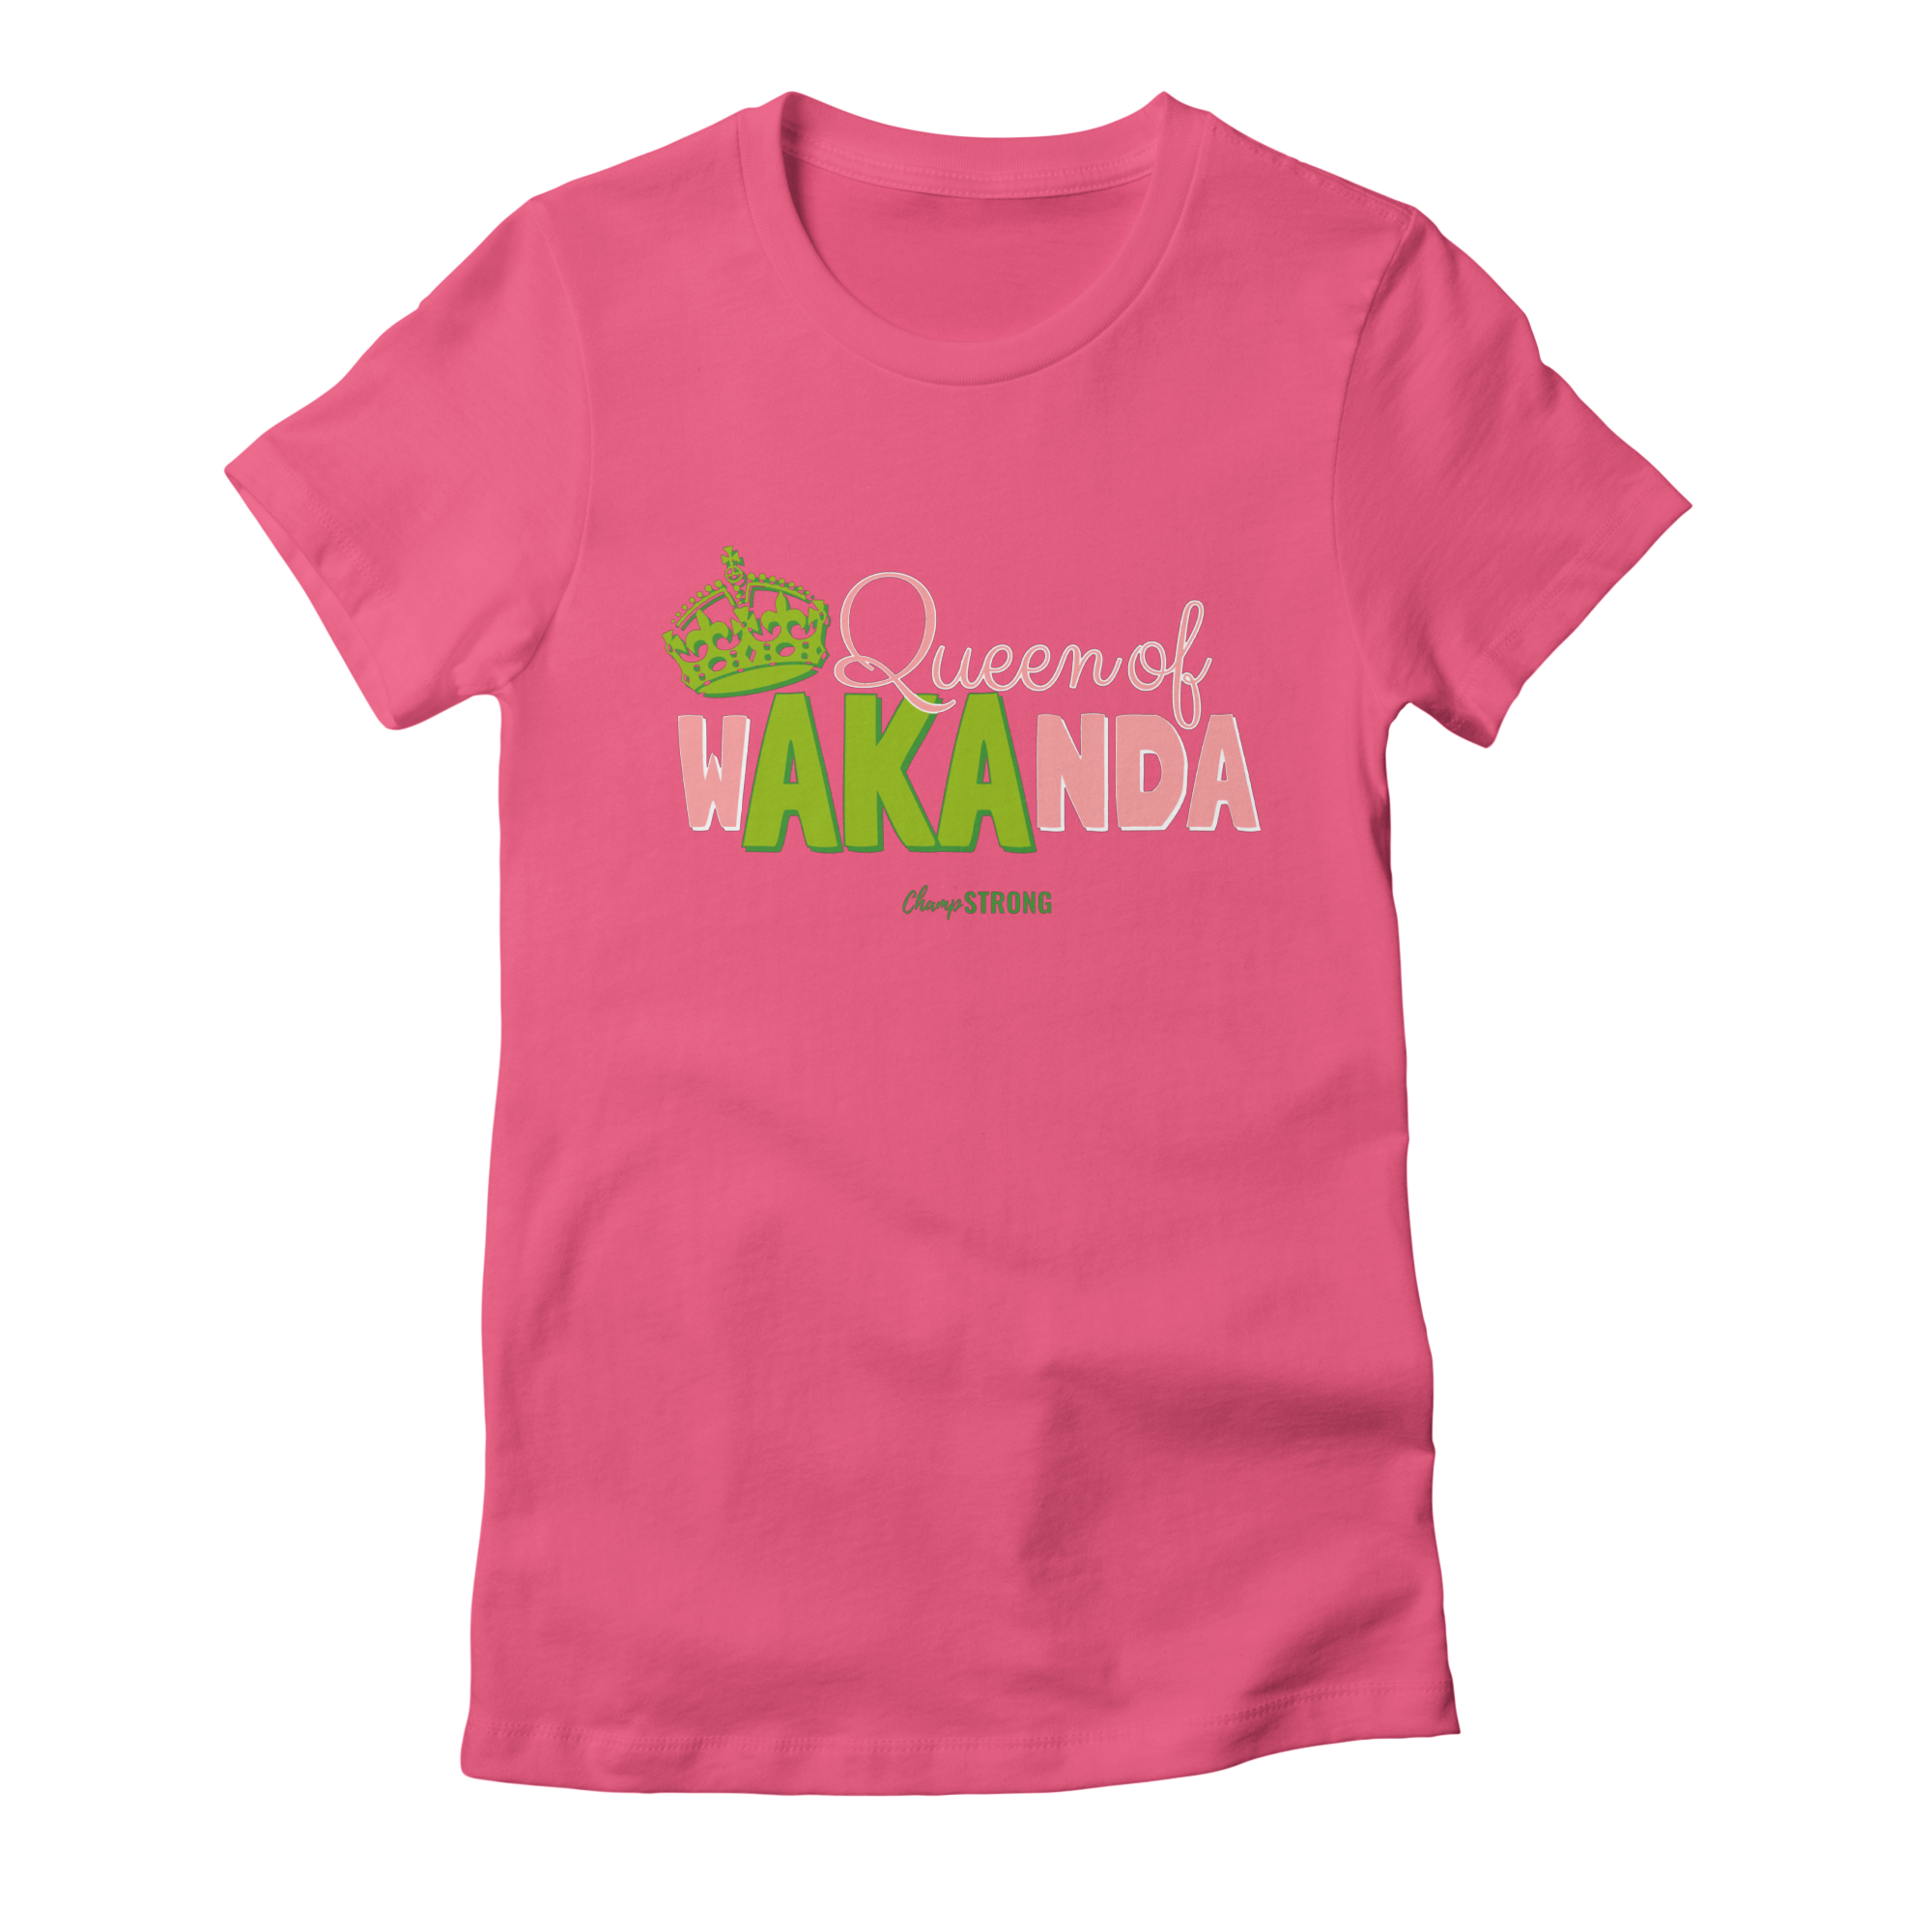 a15fb6ee champstrong queen-of-wakanda-aka-1 womens t-shirt